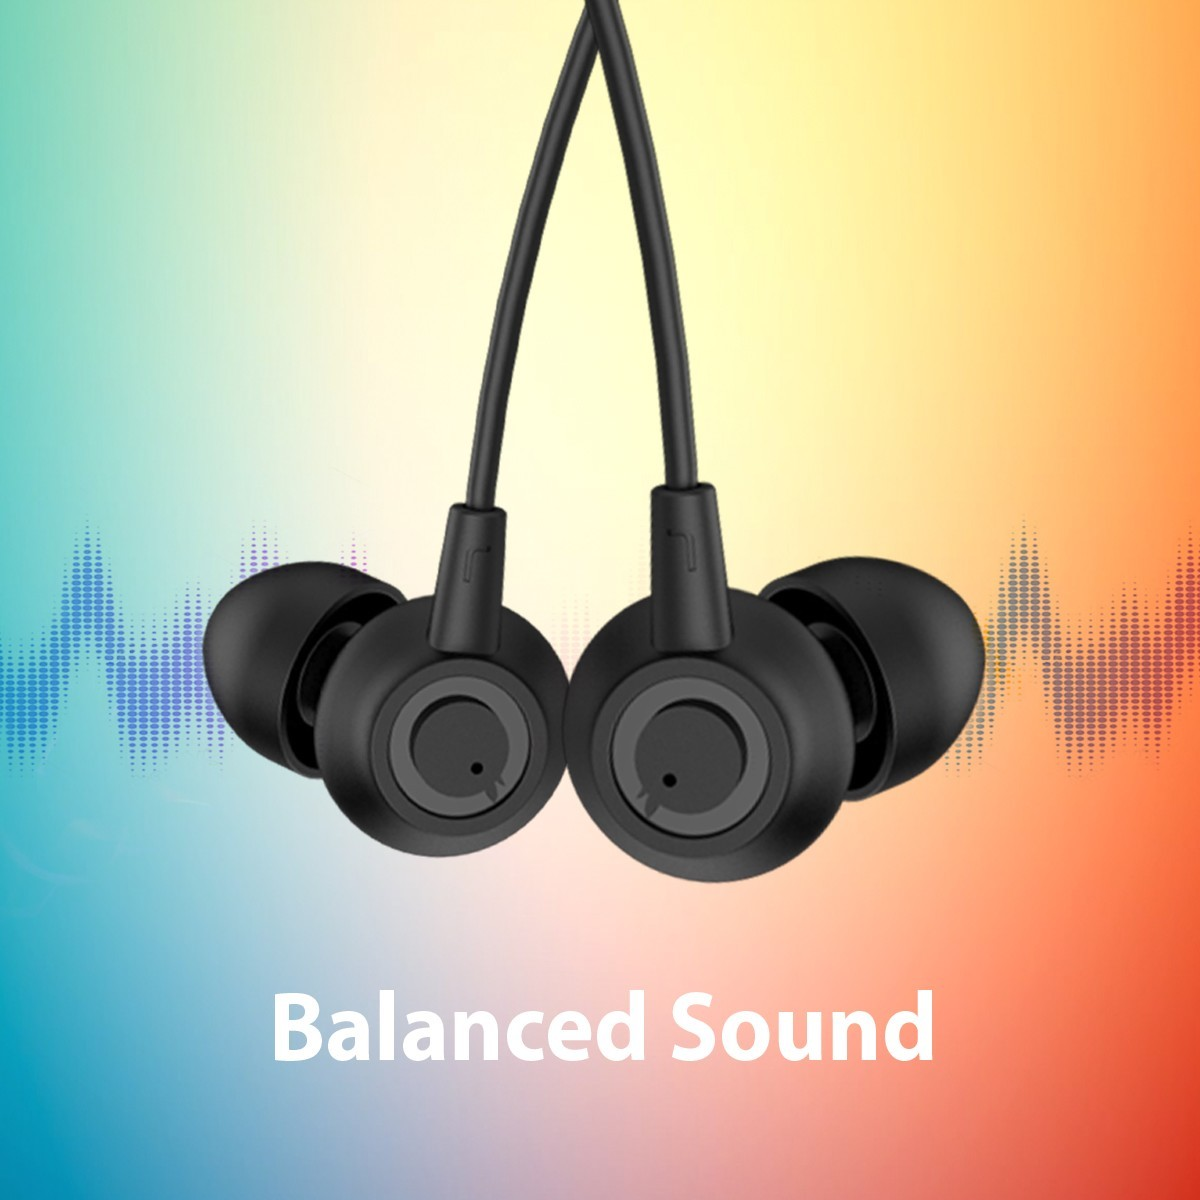 Blaupunkt Wireless Headphones